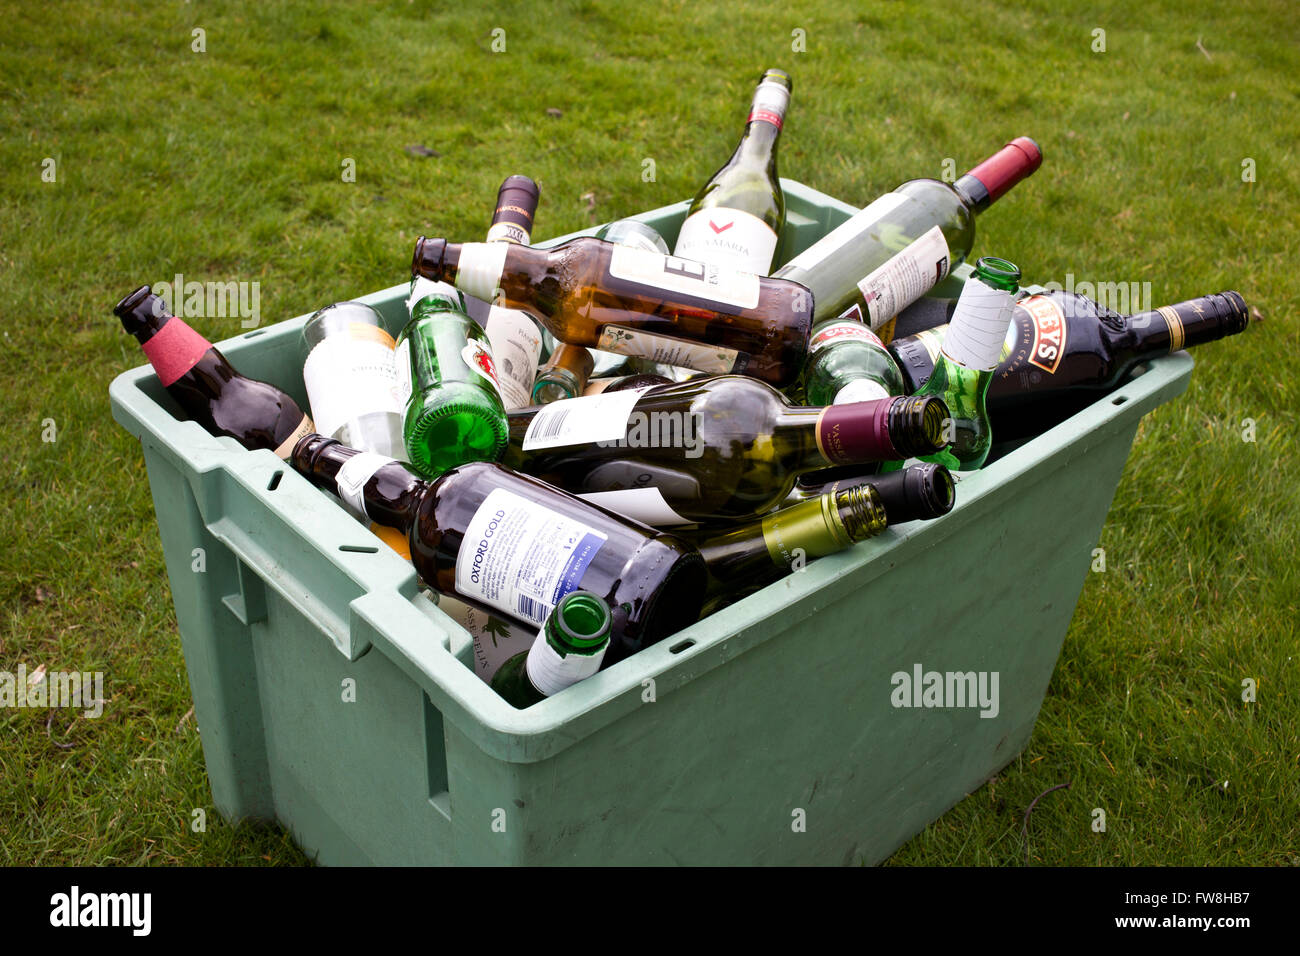 Recycling Glass Wine Bottles In A Recycling Bin Ready For